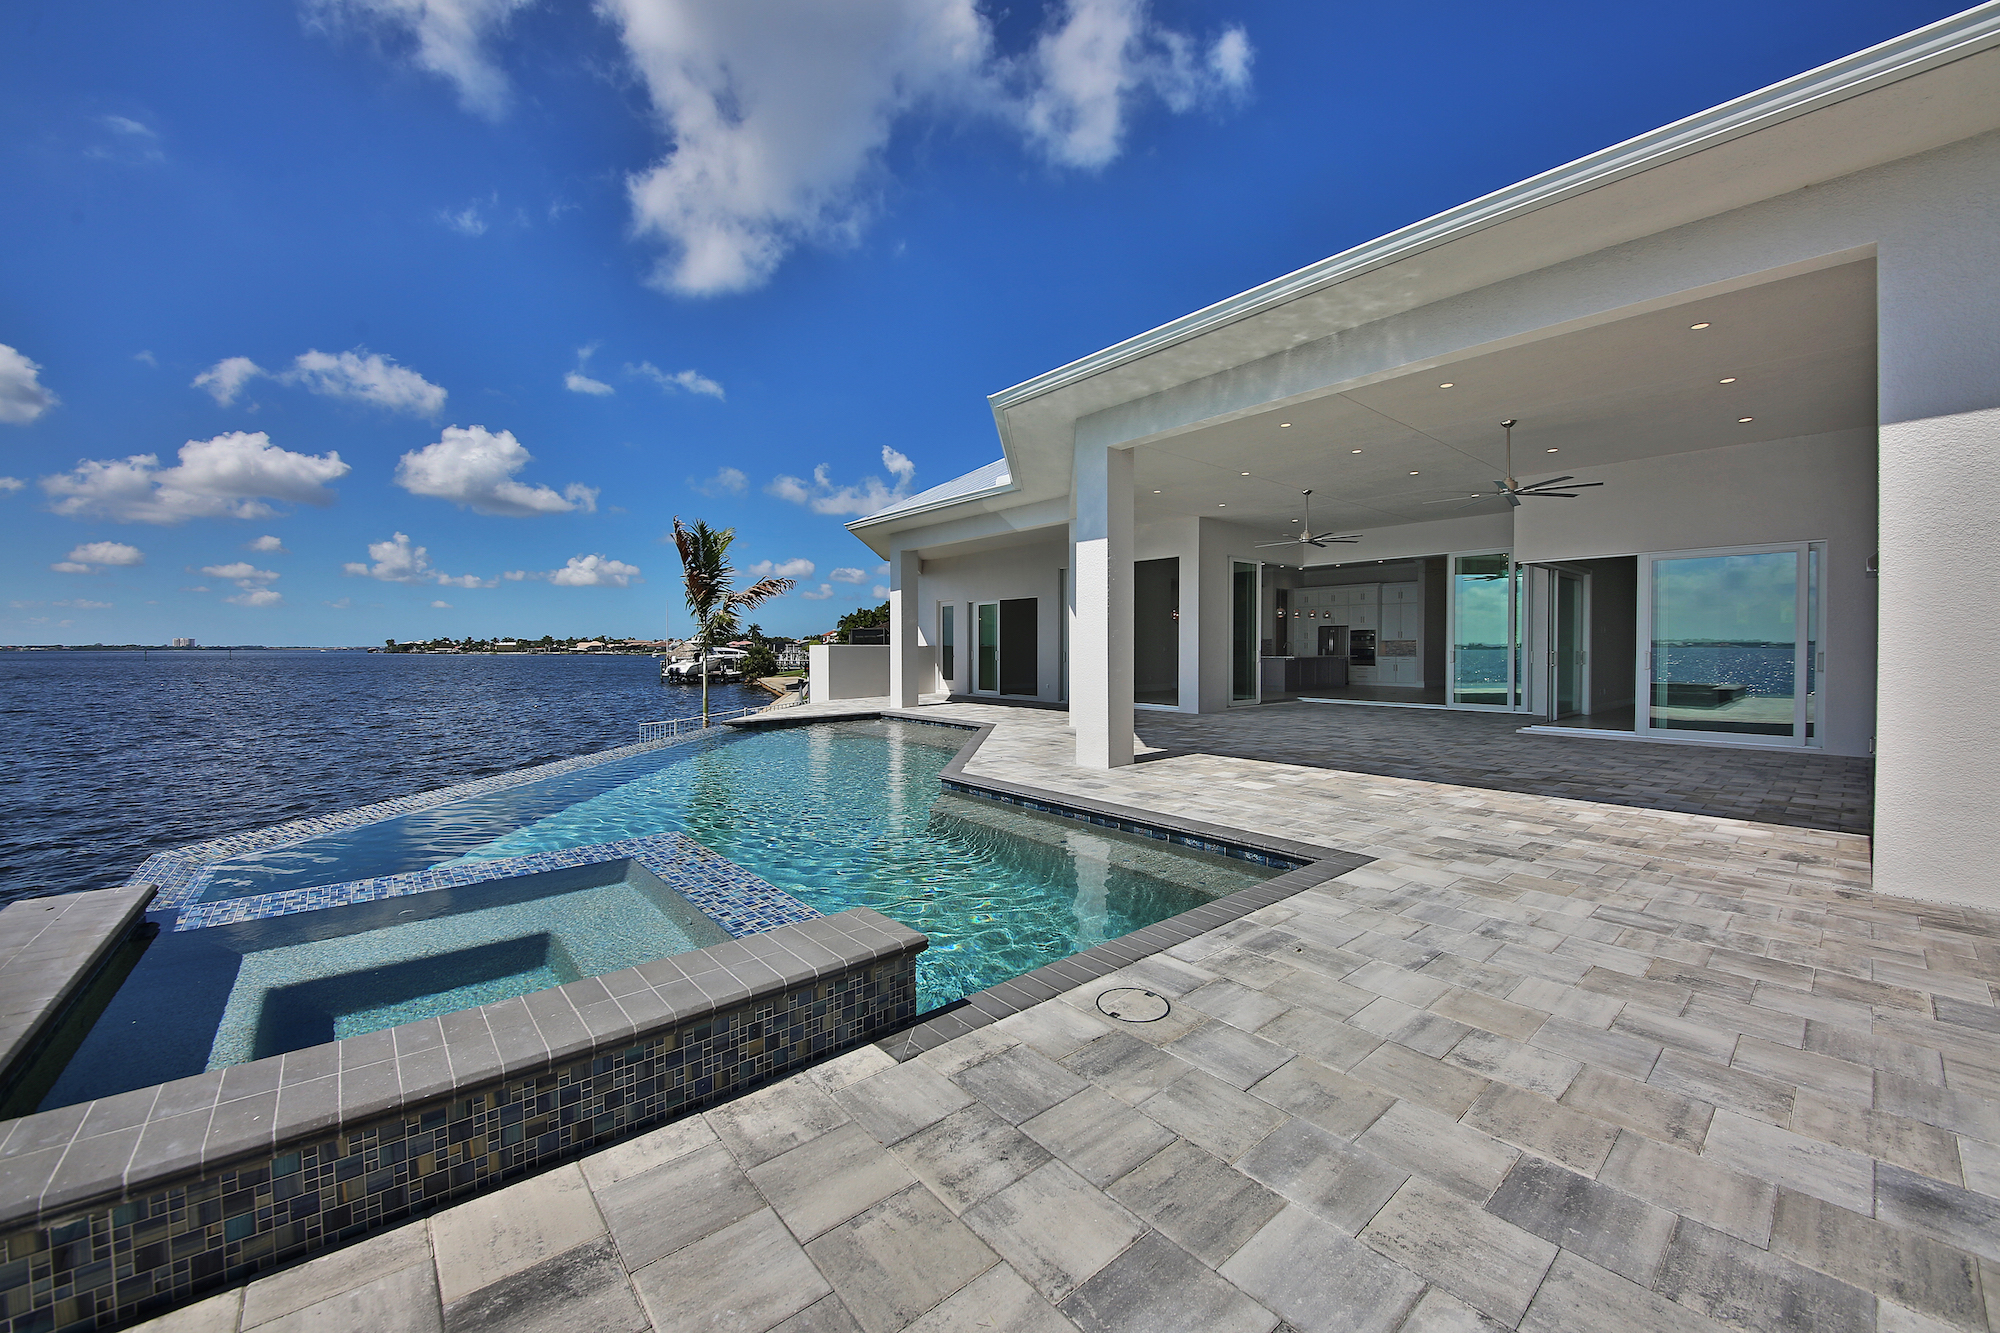 Pool and Patio (1)